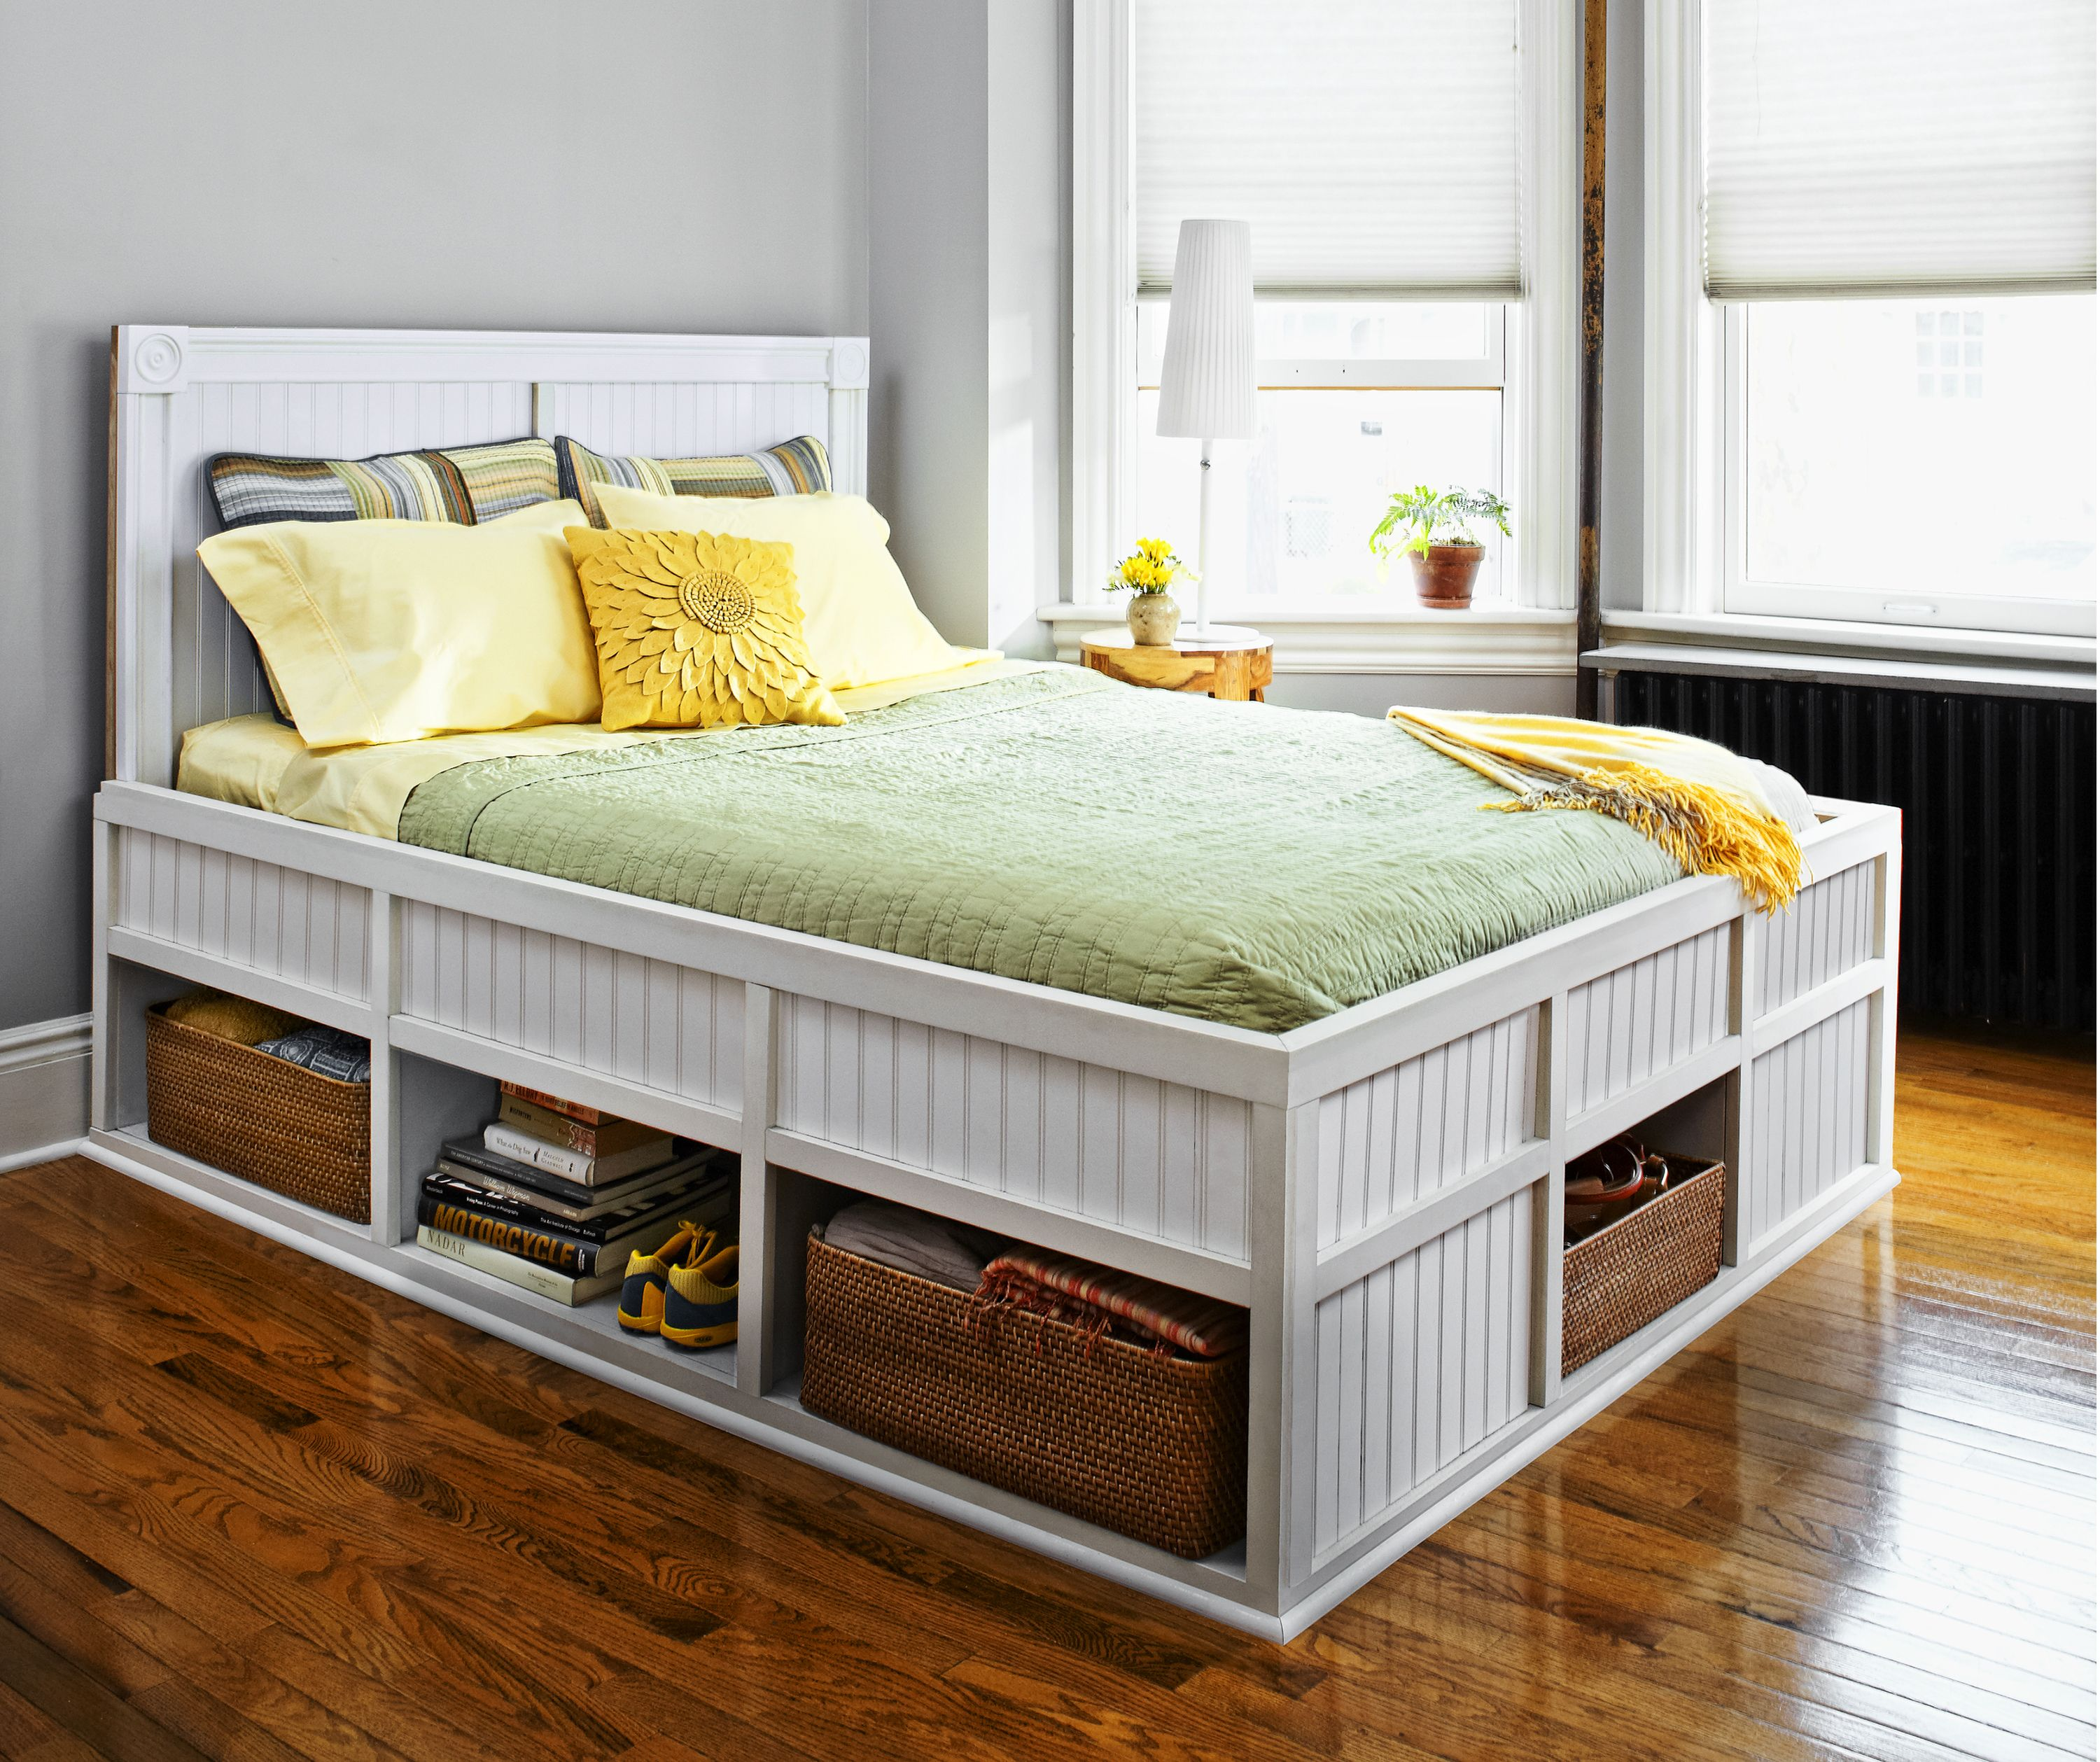 27 Ways To Build Your Own Bedroom Furniture With Images Diy